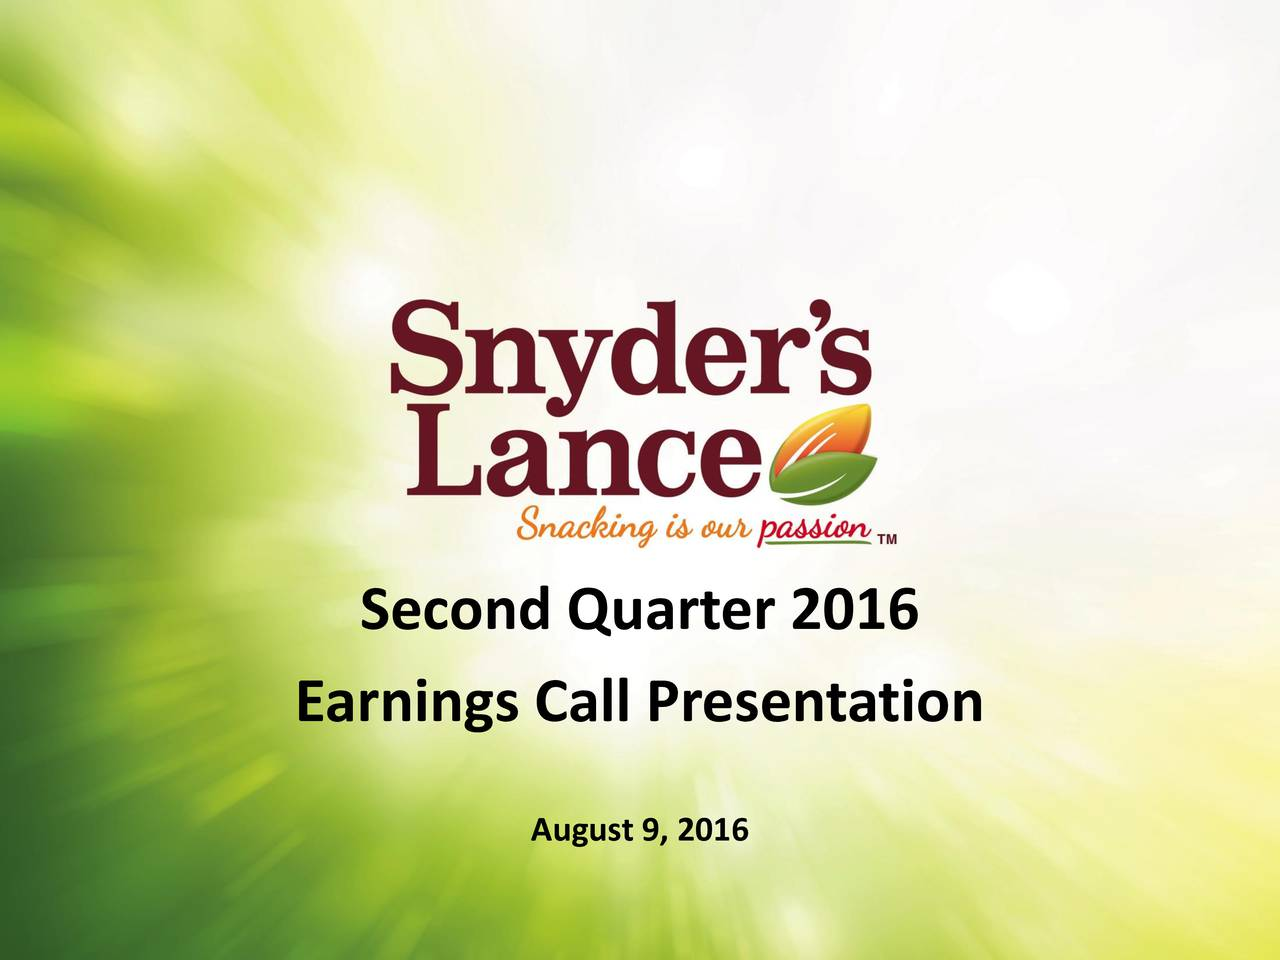 Earnings Call Presentation August 9, 2016